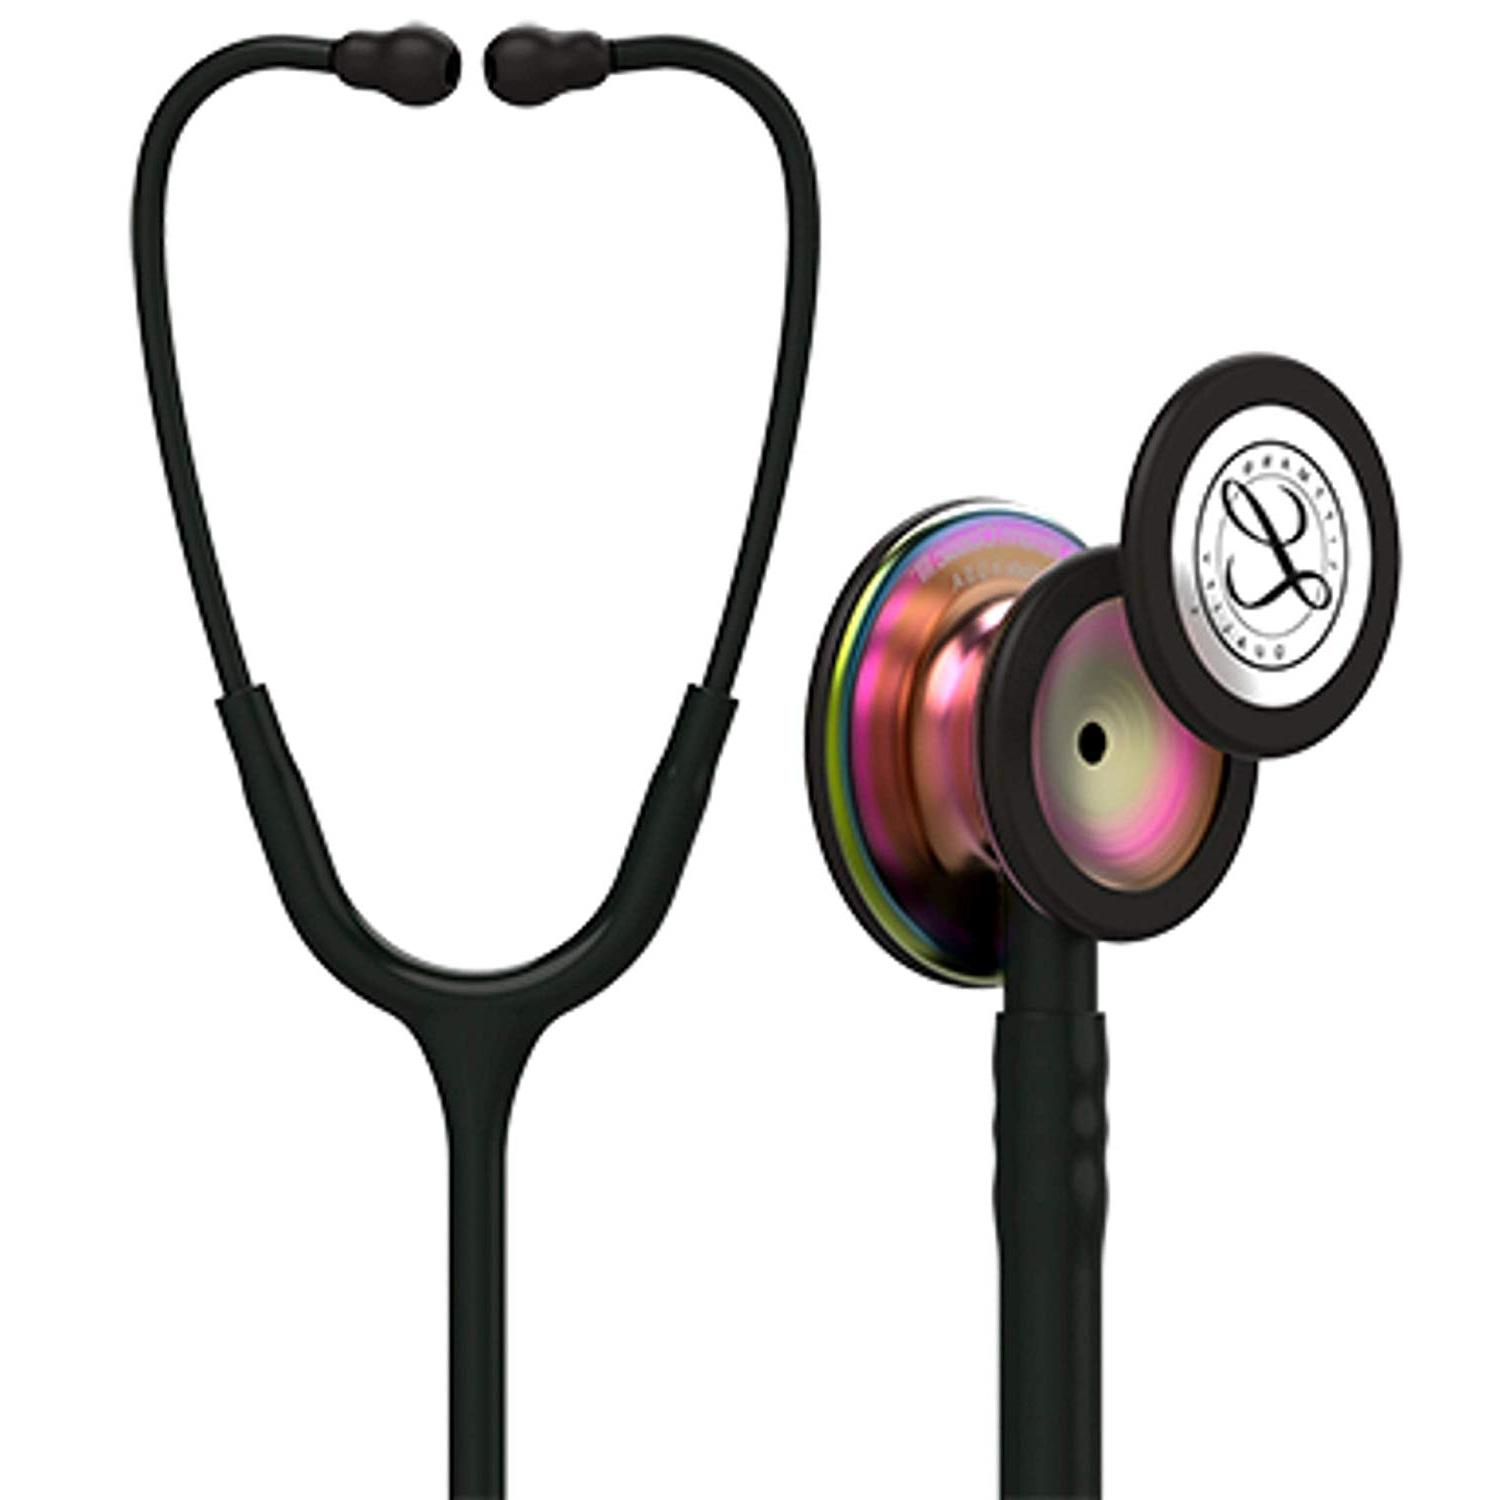 littmann classic iii monitoring stethoscope rainbow finish